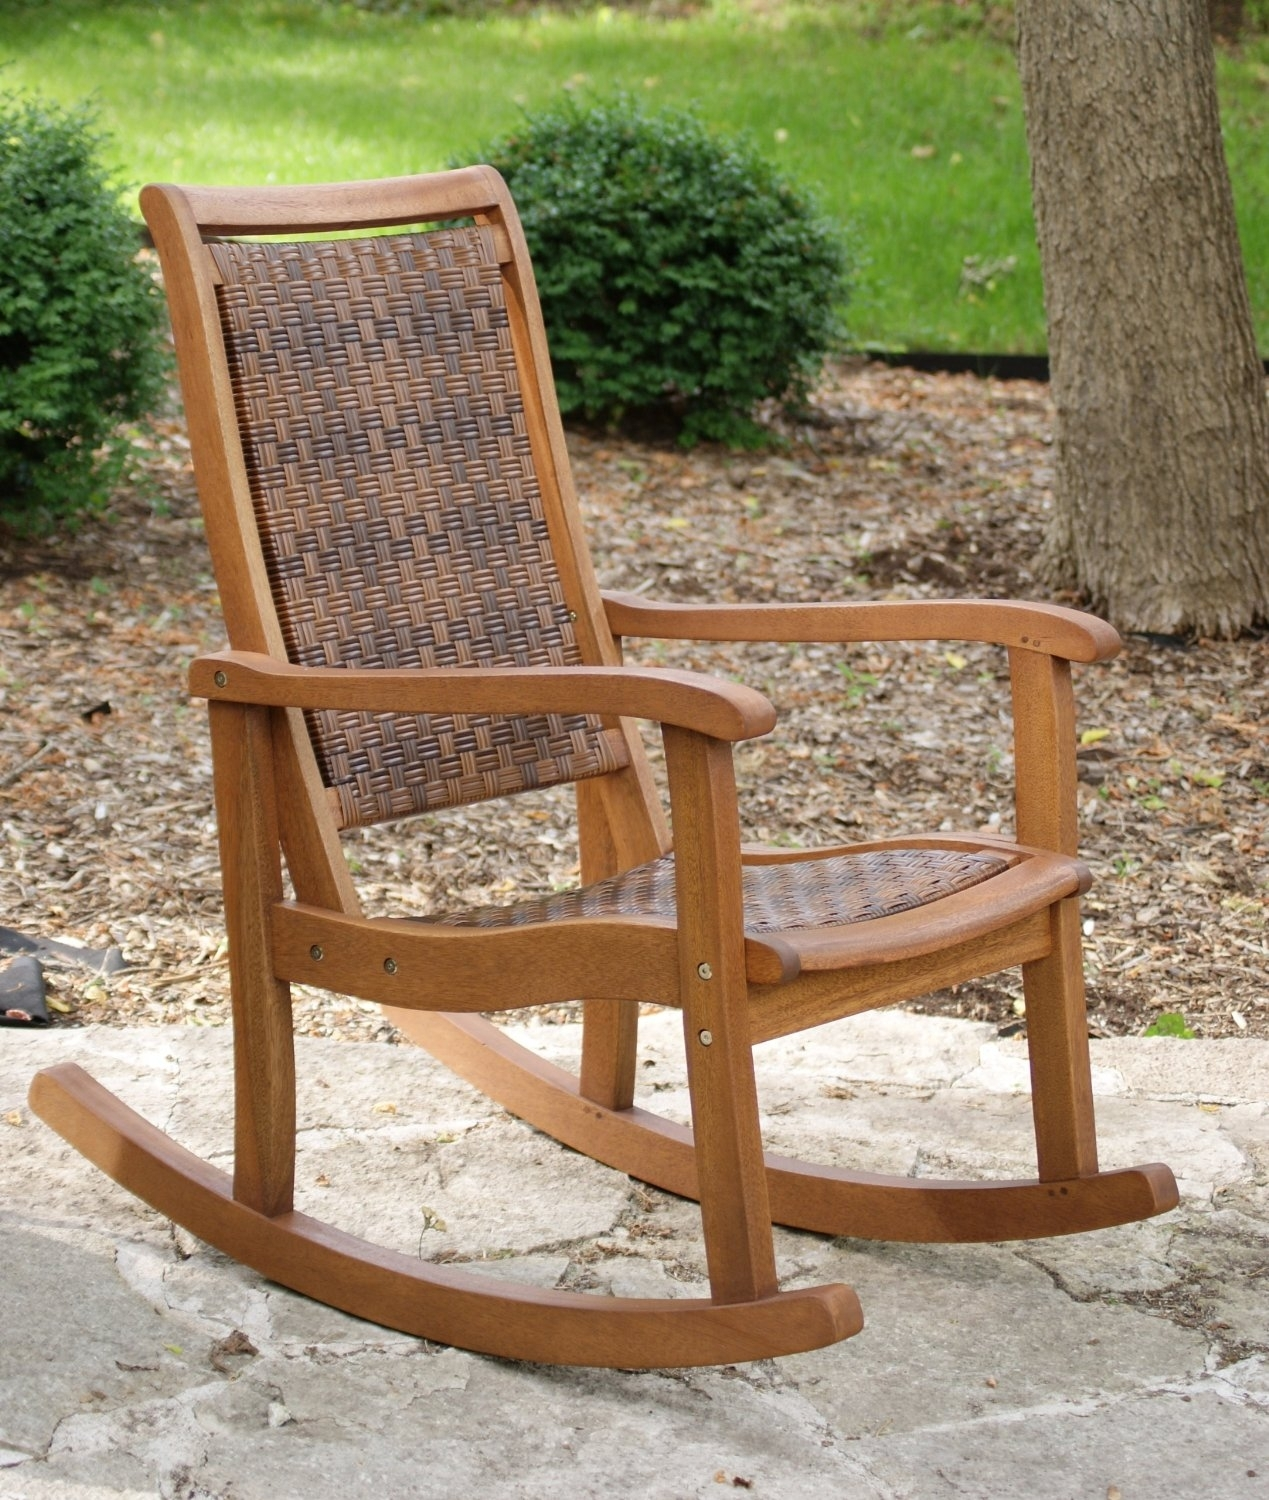 Inspiration about Great Rocking Patio Chairs Outdoor Wicker Rocking Chairs Patio Pertaining To Rocking Chair Outdoor Wooden (#7 of 15)